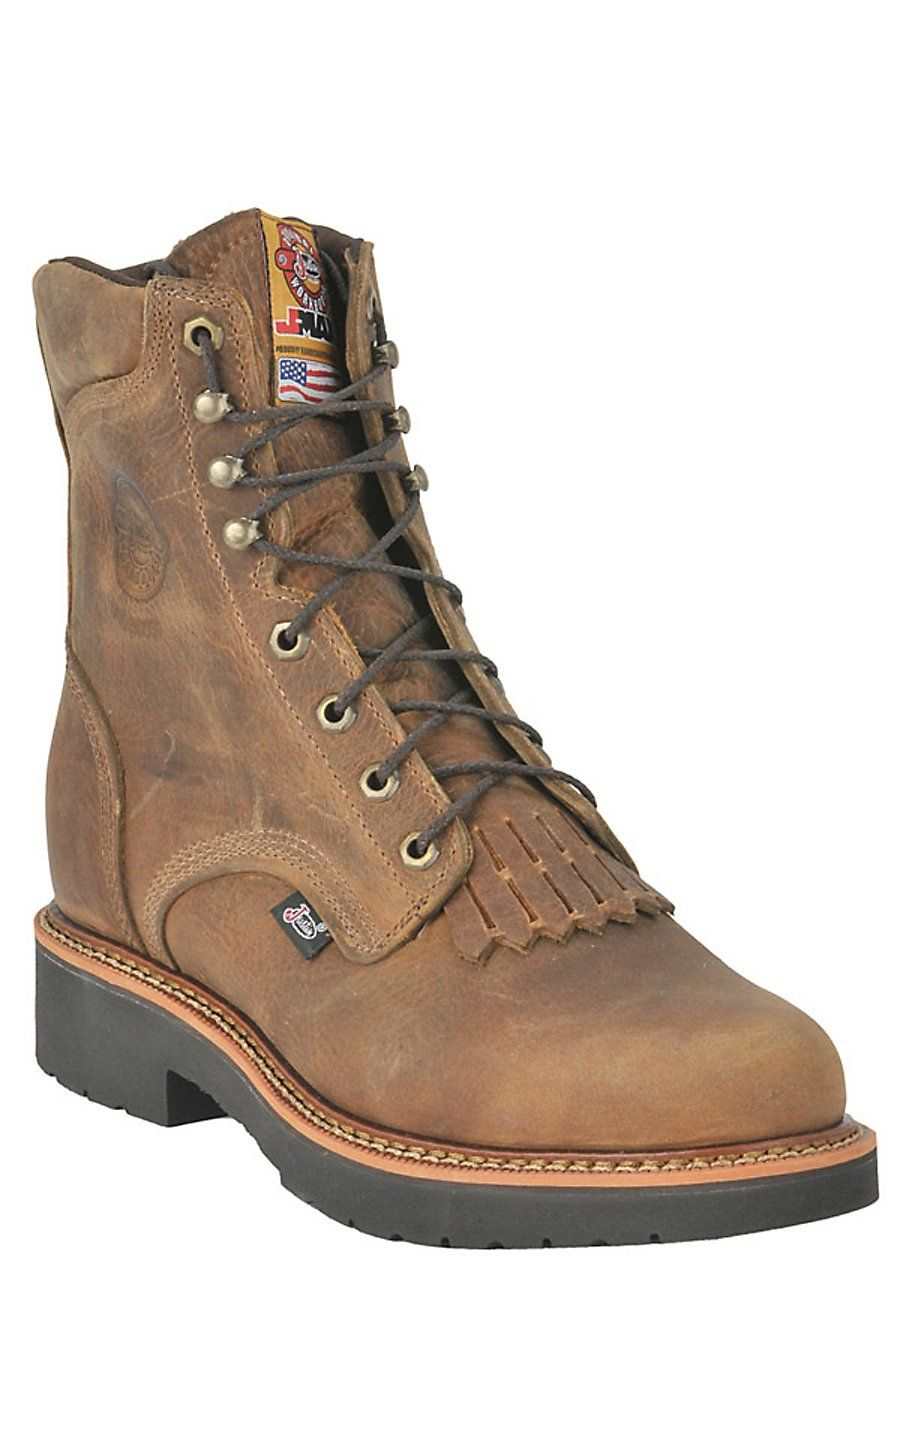 Justin Men S Blueprint Rugged Tan Gaucho Round Steel Toe Lace Up Work Boot Comfortable Steel Toe Boots Boots Steel Toe Boots